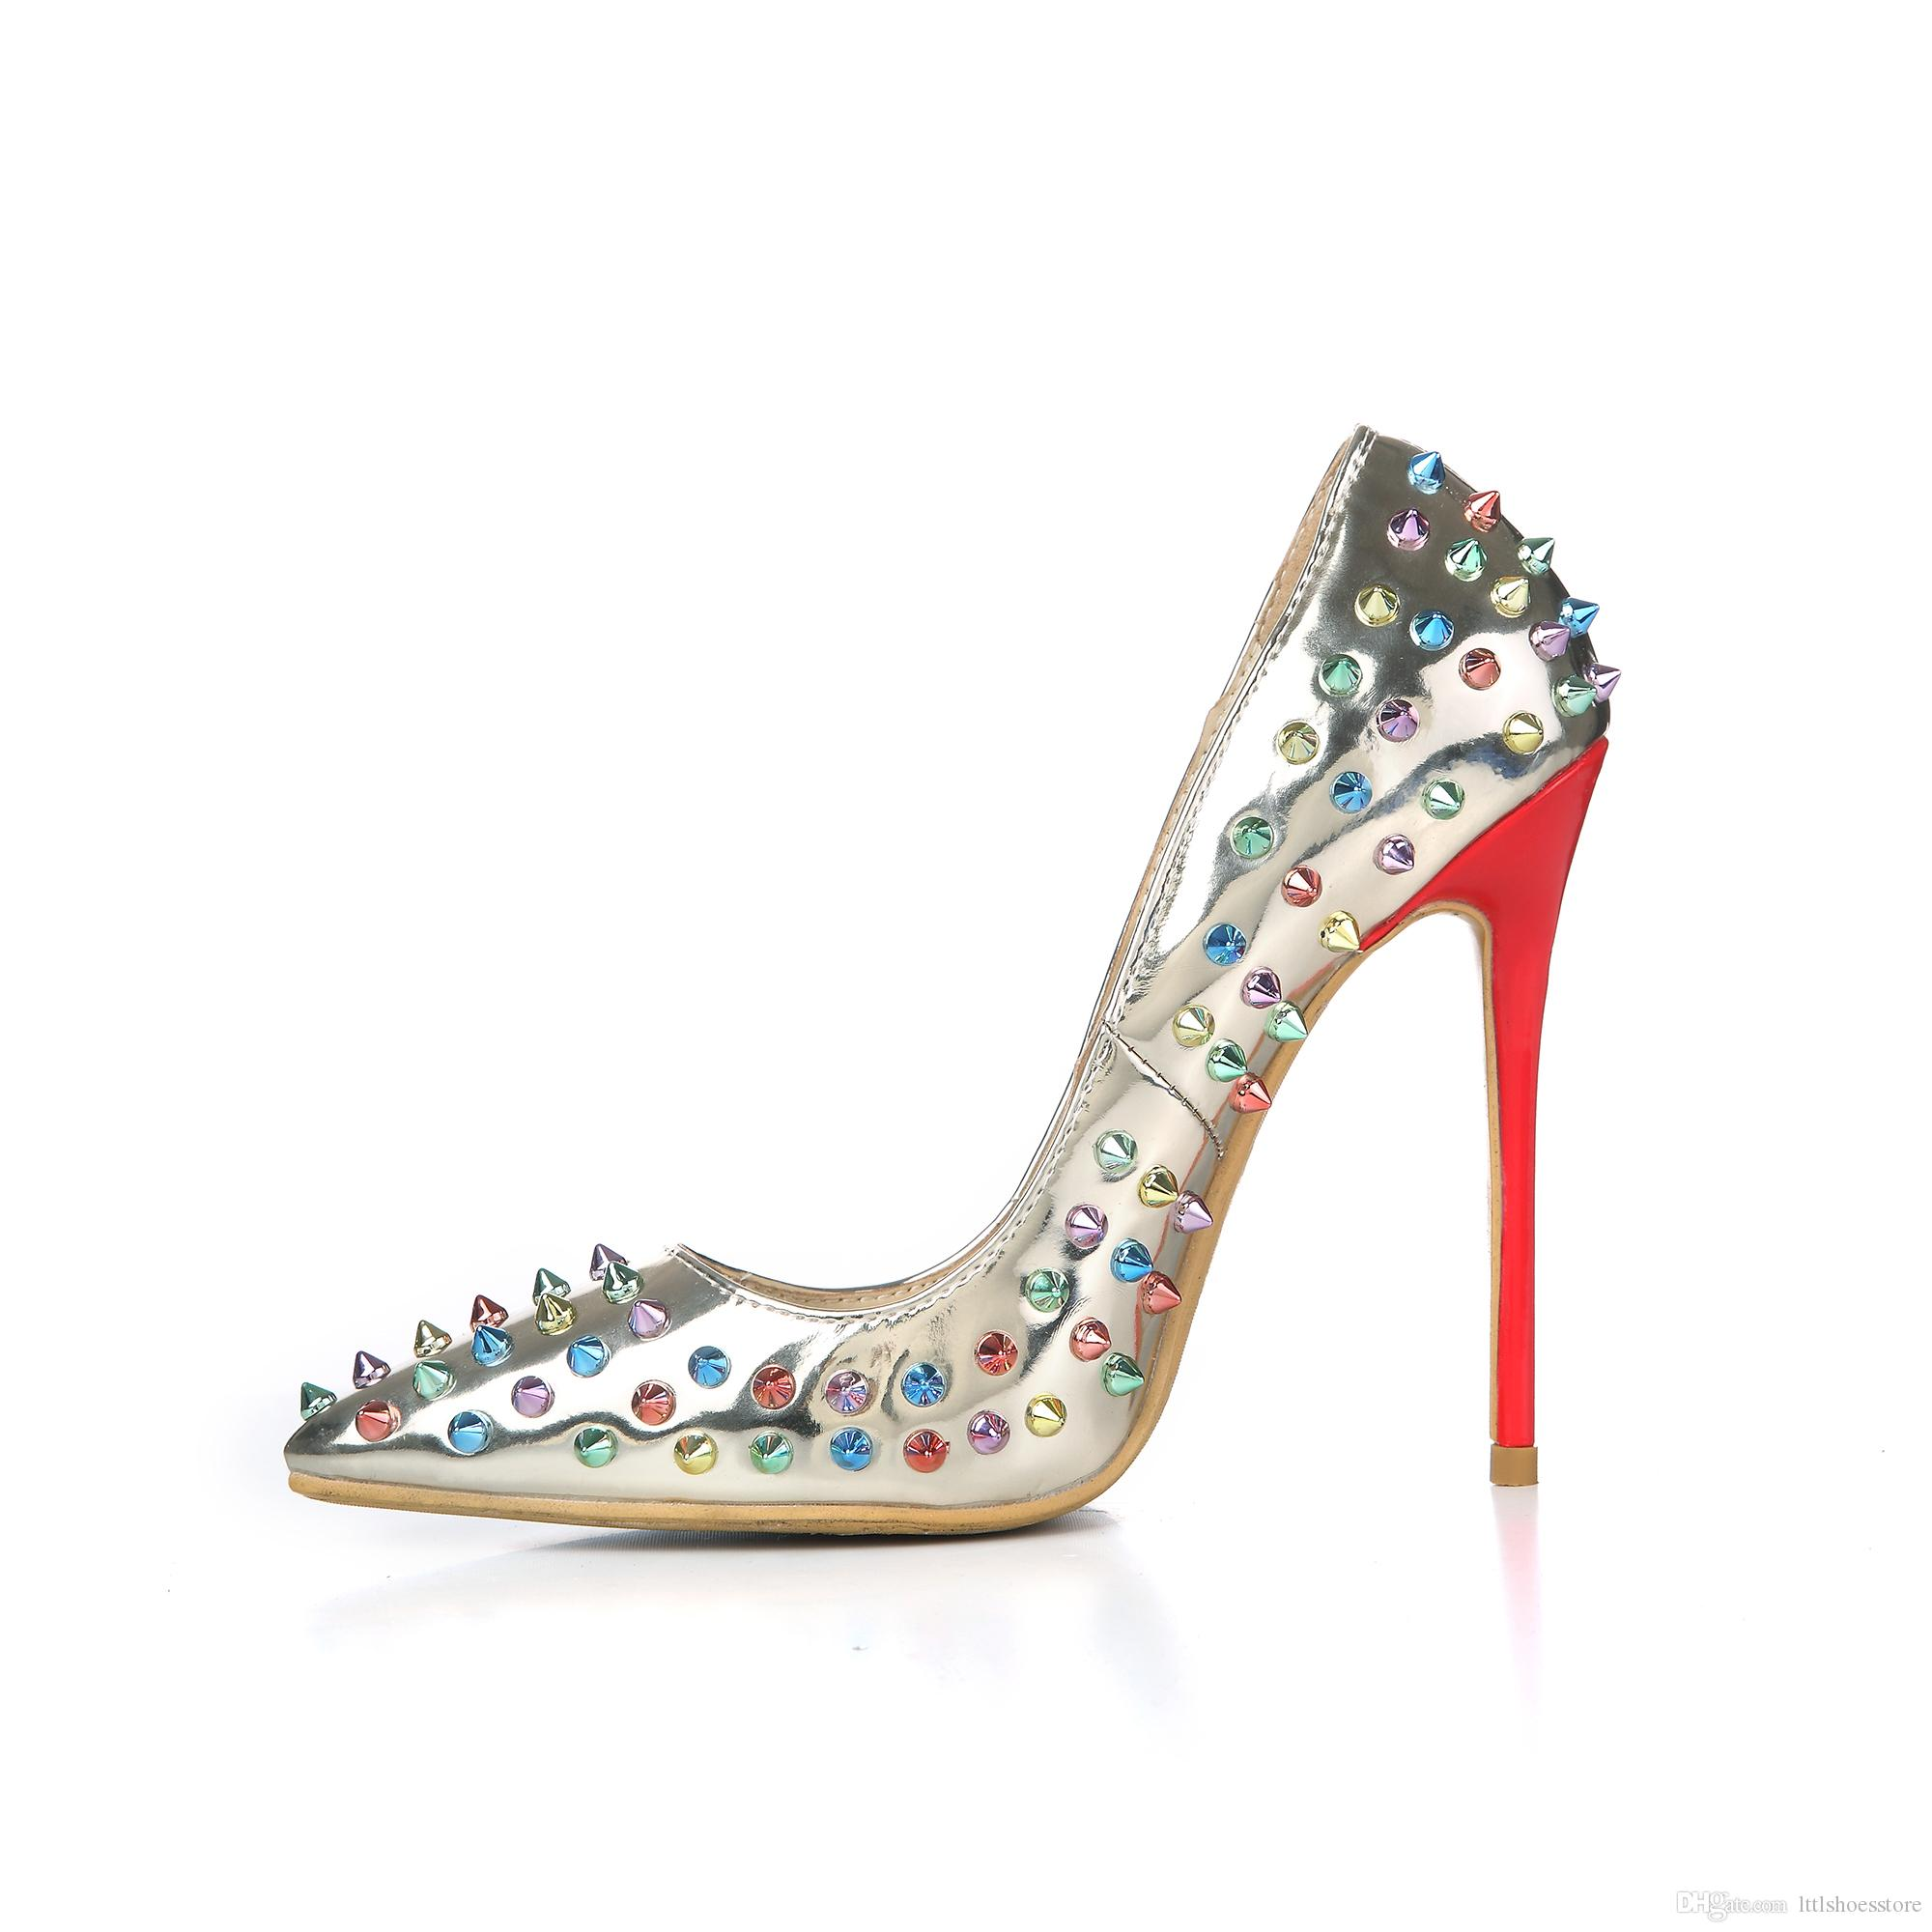 LTTL Brand Shoes Fashionable Spiked Pumps Stiletto Point Toes High Heeled Shoes For Women Sexy Party Shoes Zapatos Tacones Sapatos Femininos